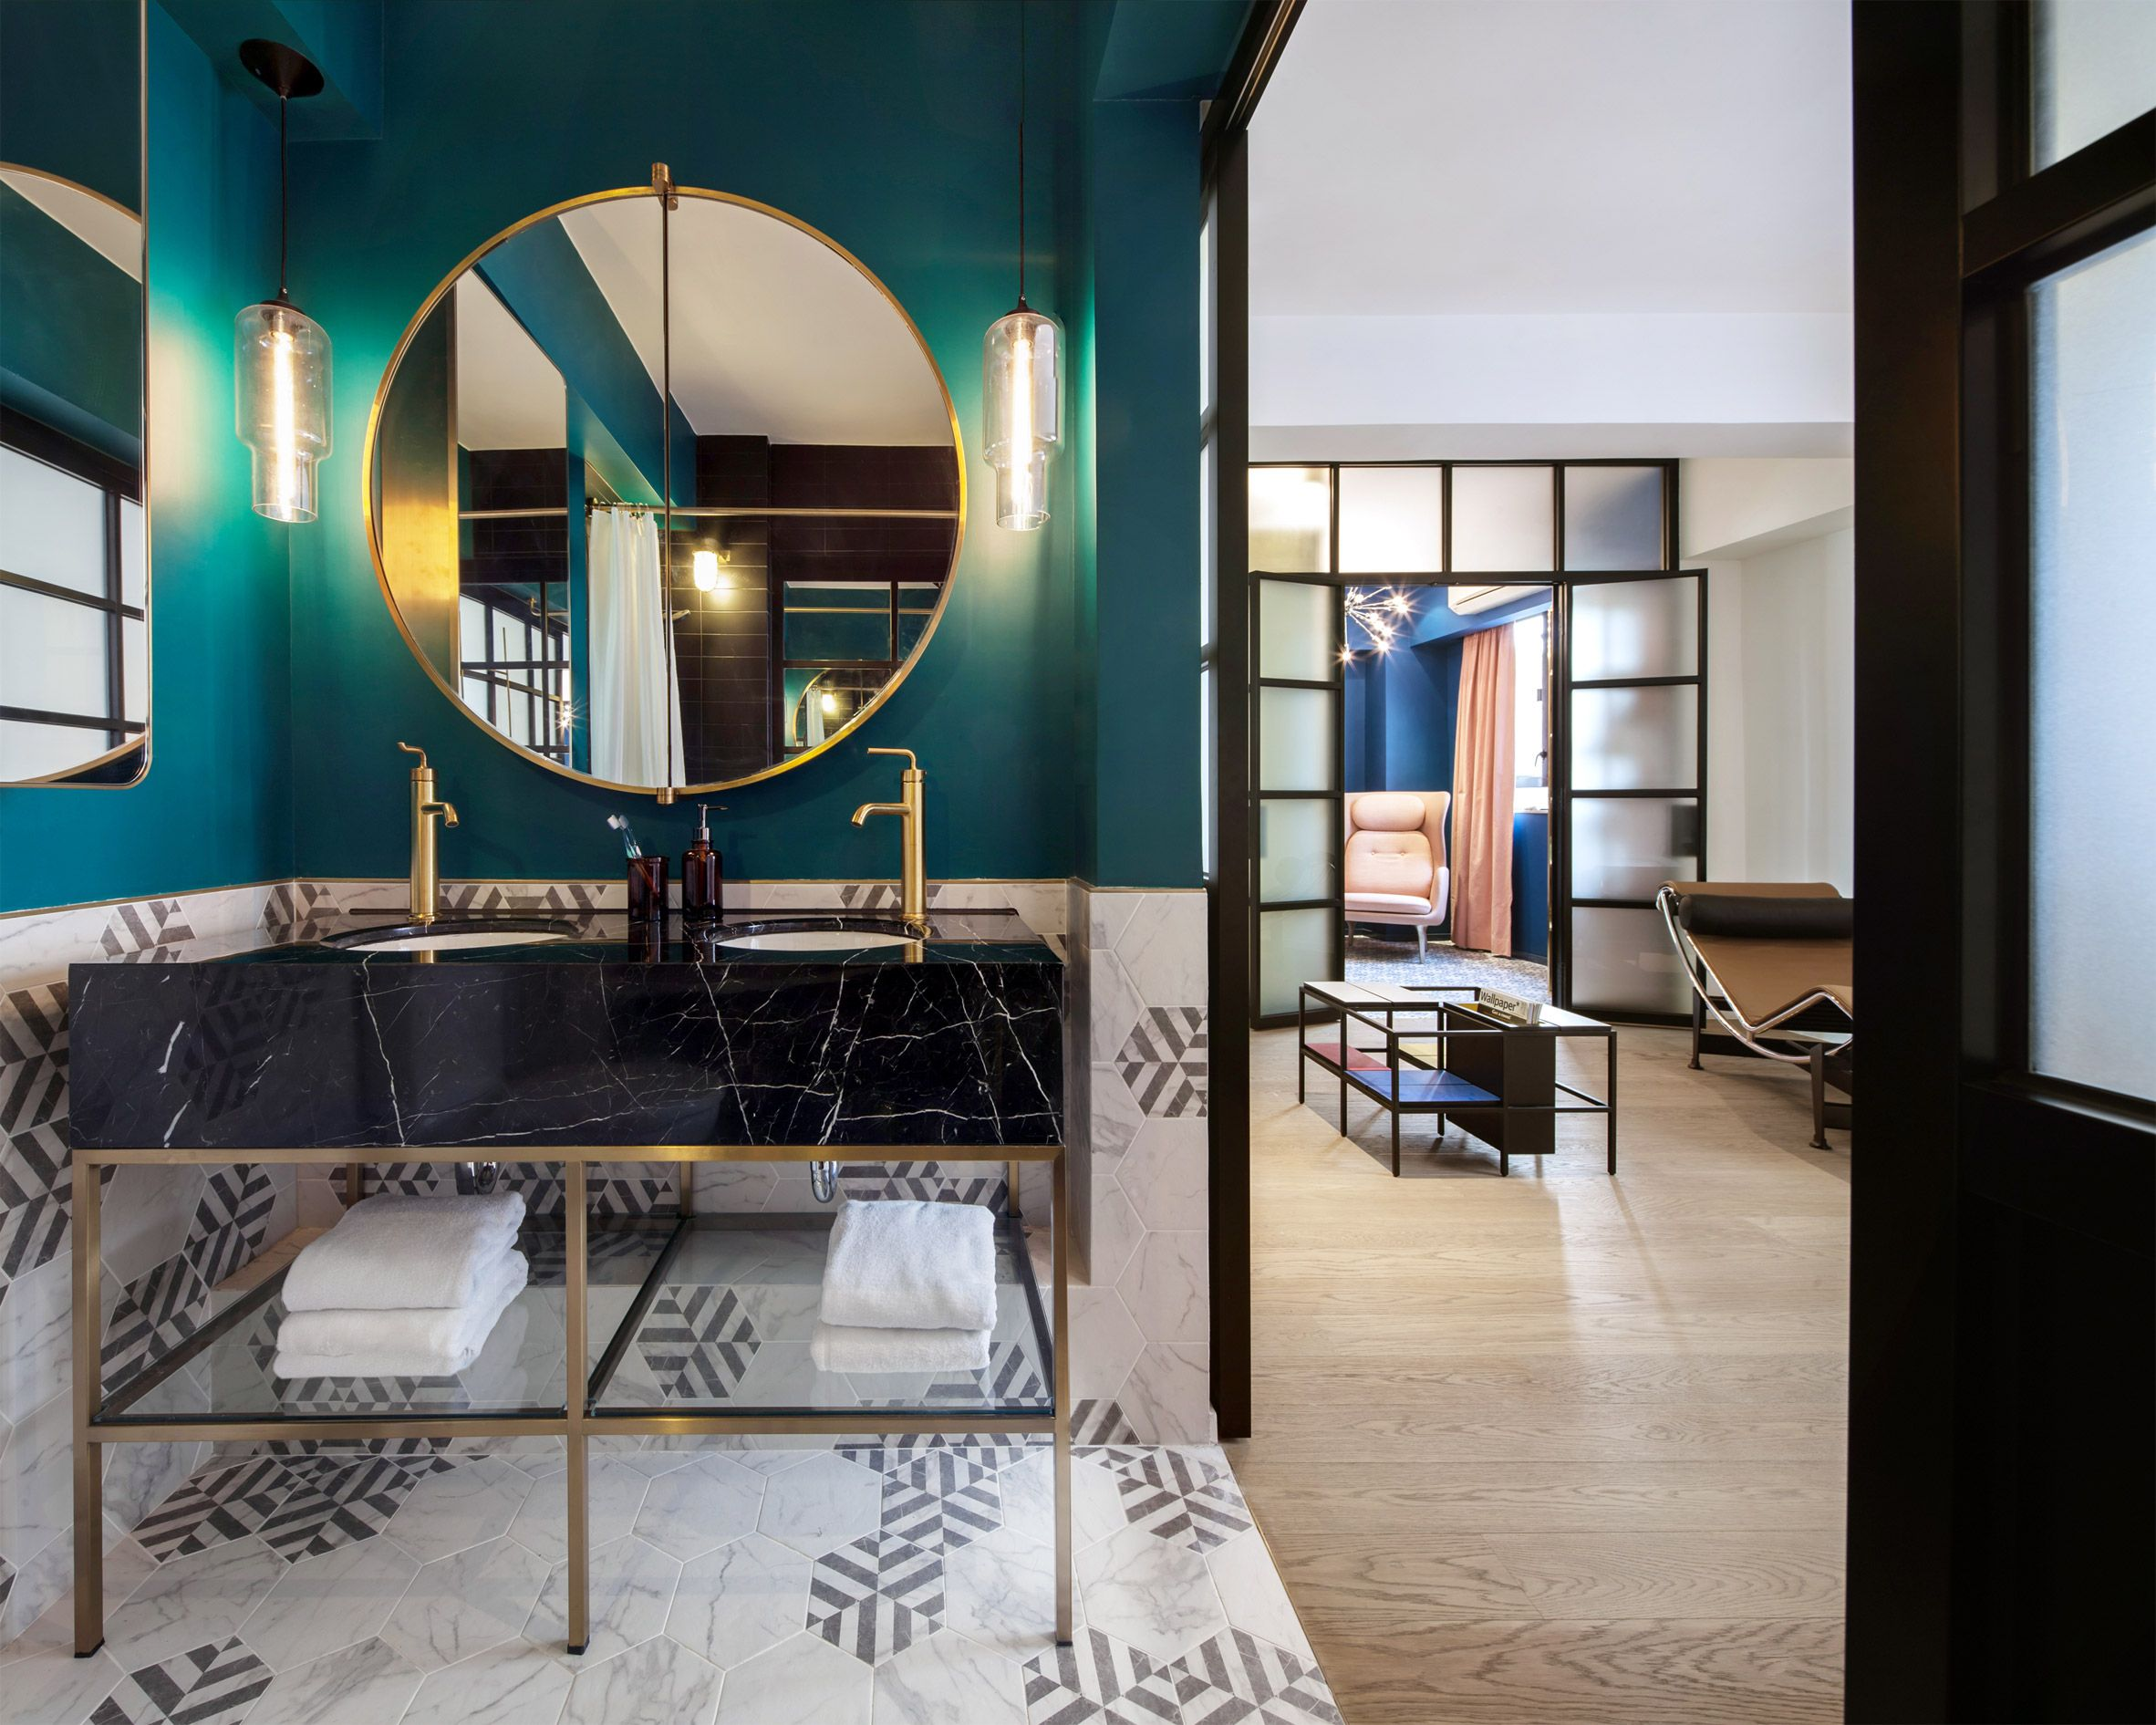 Swathes of bright colour combine with patterned ceramic tiles in the ...